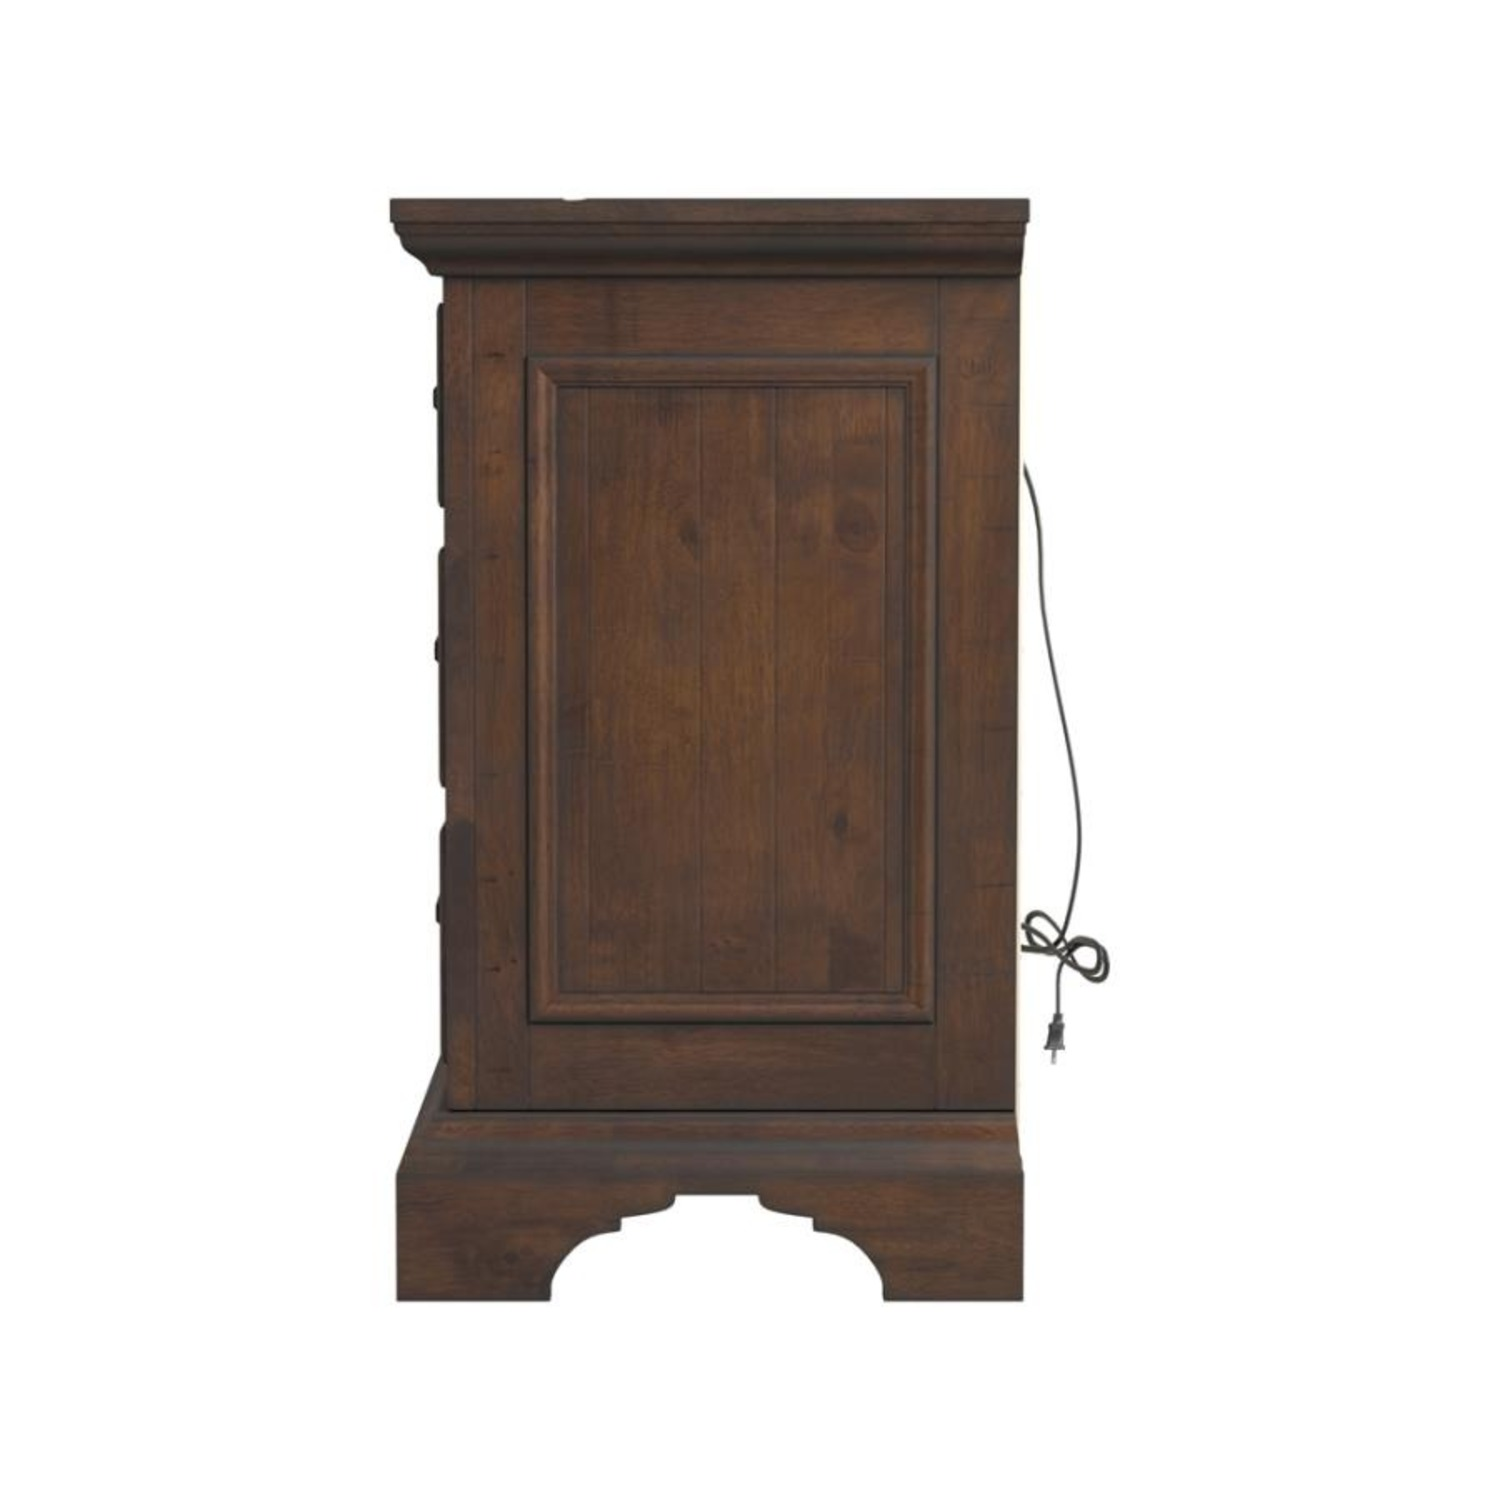 Nightstand In Vintage Bourbon & Rustic Finish - image-5